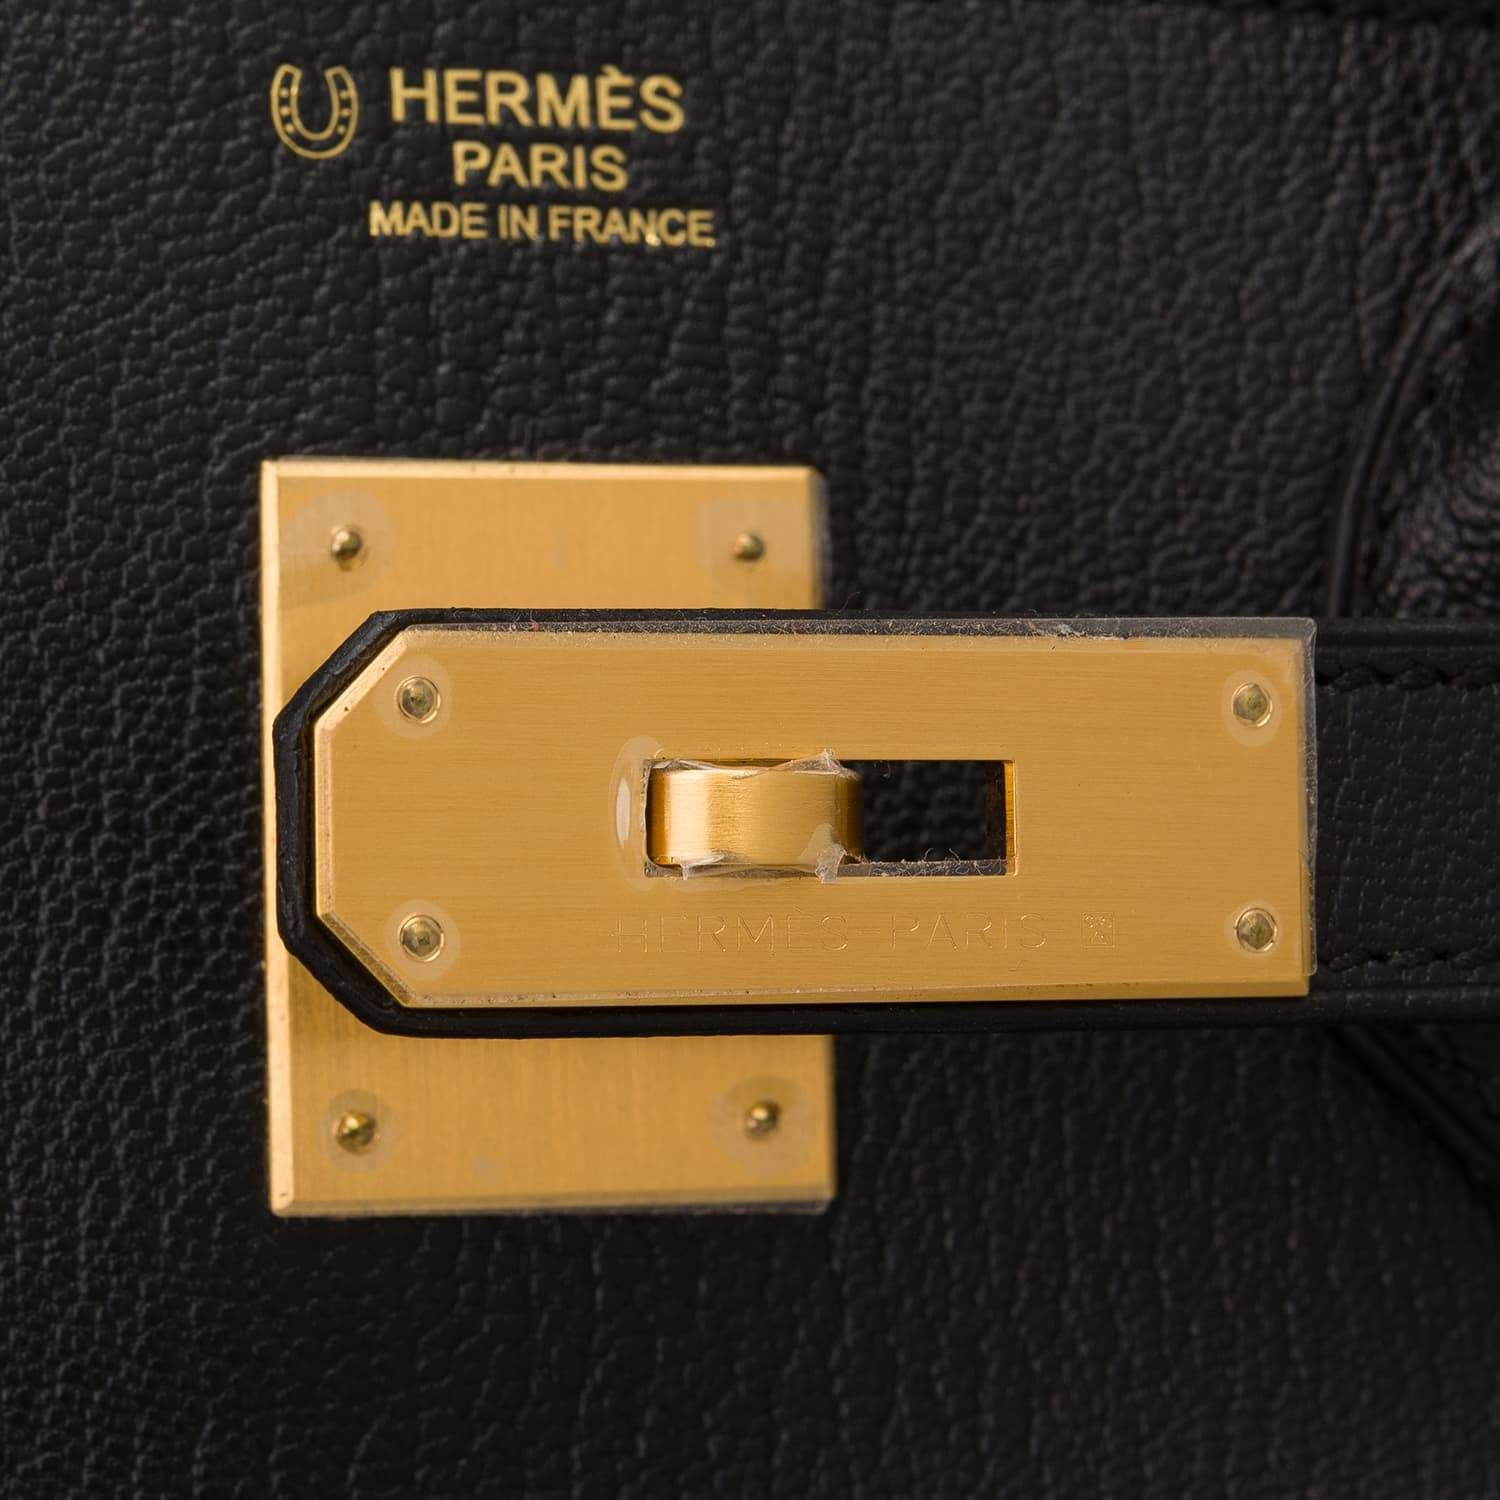 Hermes Hss Black And Blue Hydra Chevre Mysore Birkin 30Cm Brushed Gold Hardware Handbags